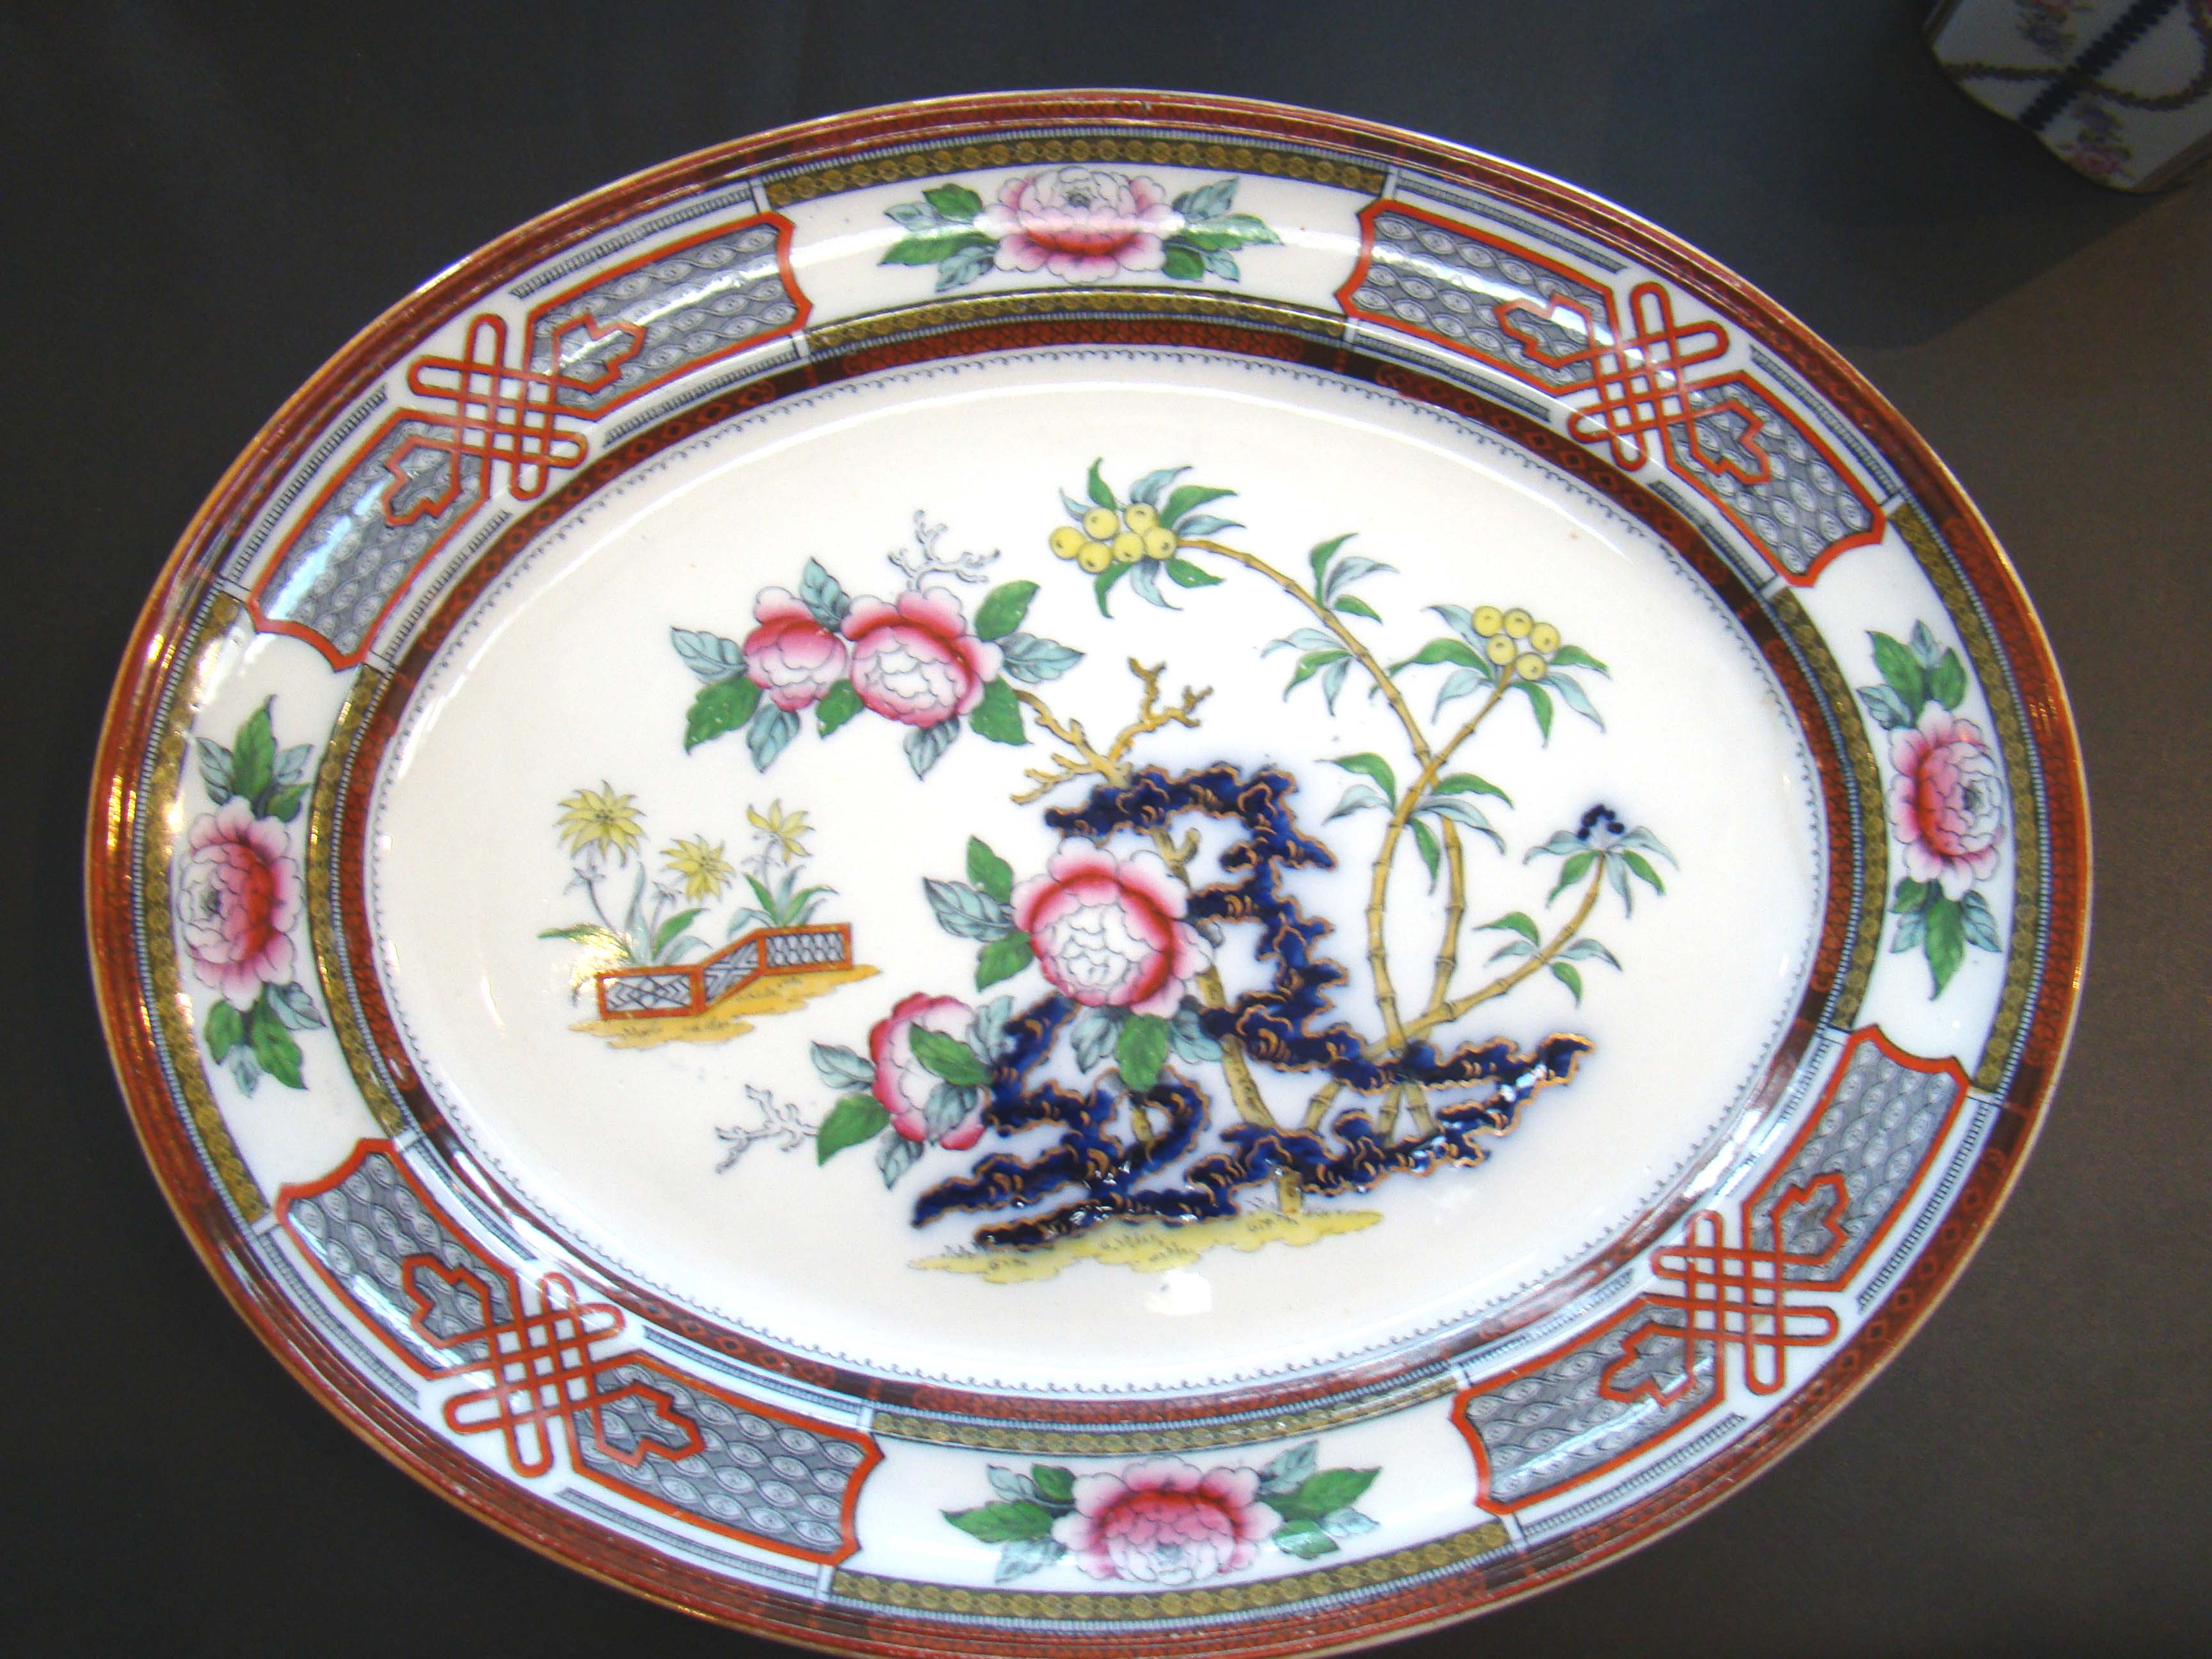 click to view larger image of An attractive English Staffordshire serving platter circa 1875 in the Chinese 'peony' pattern.